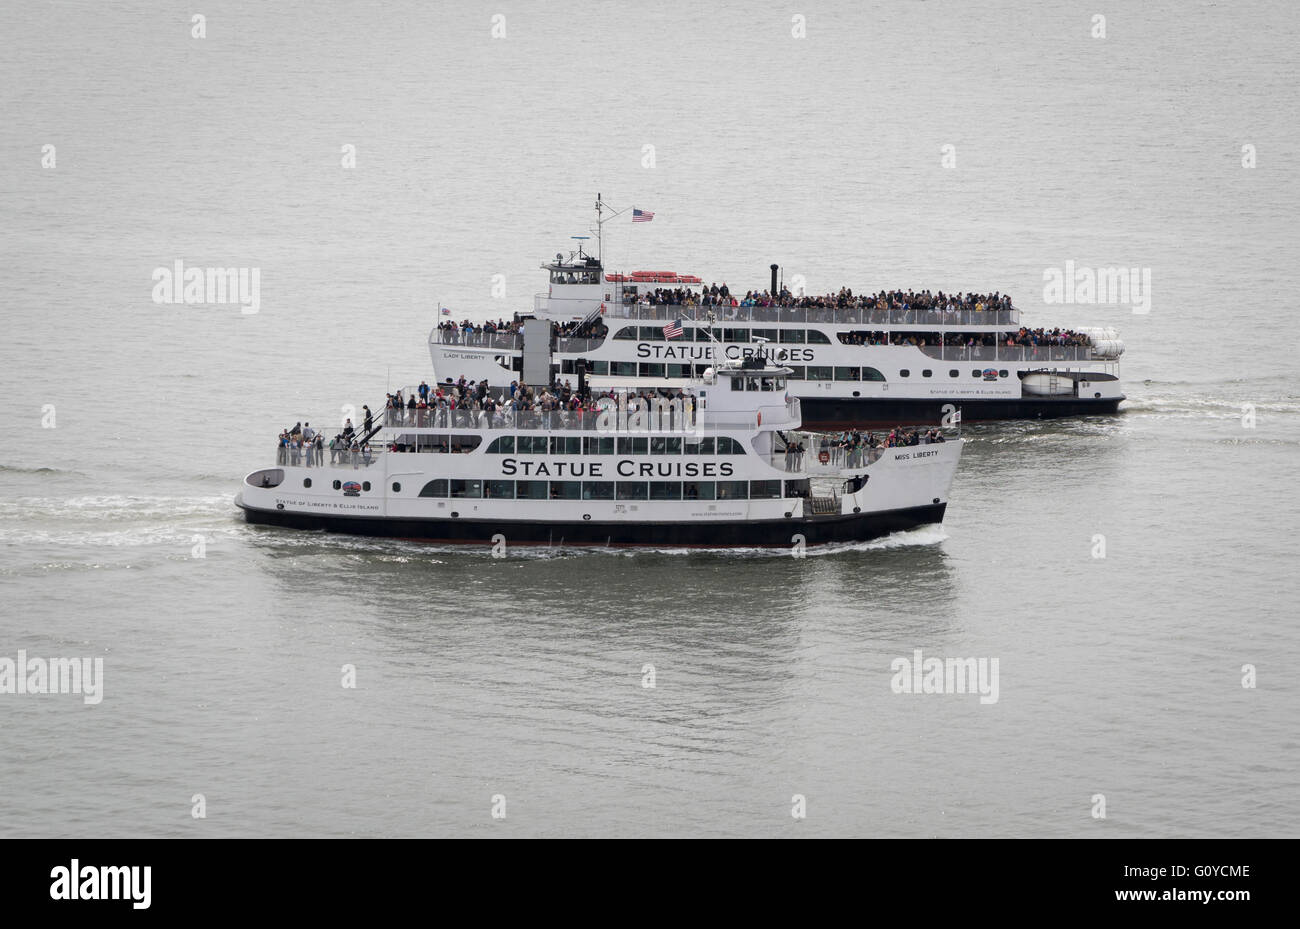 Two Statue Cruises ferry boats full of passengers passing on the Hudson River, New York City. - Stock Image